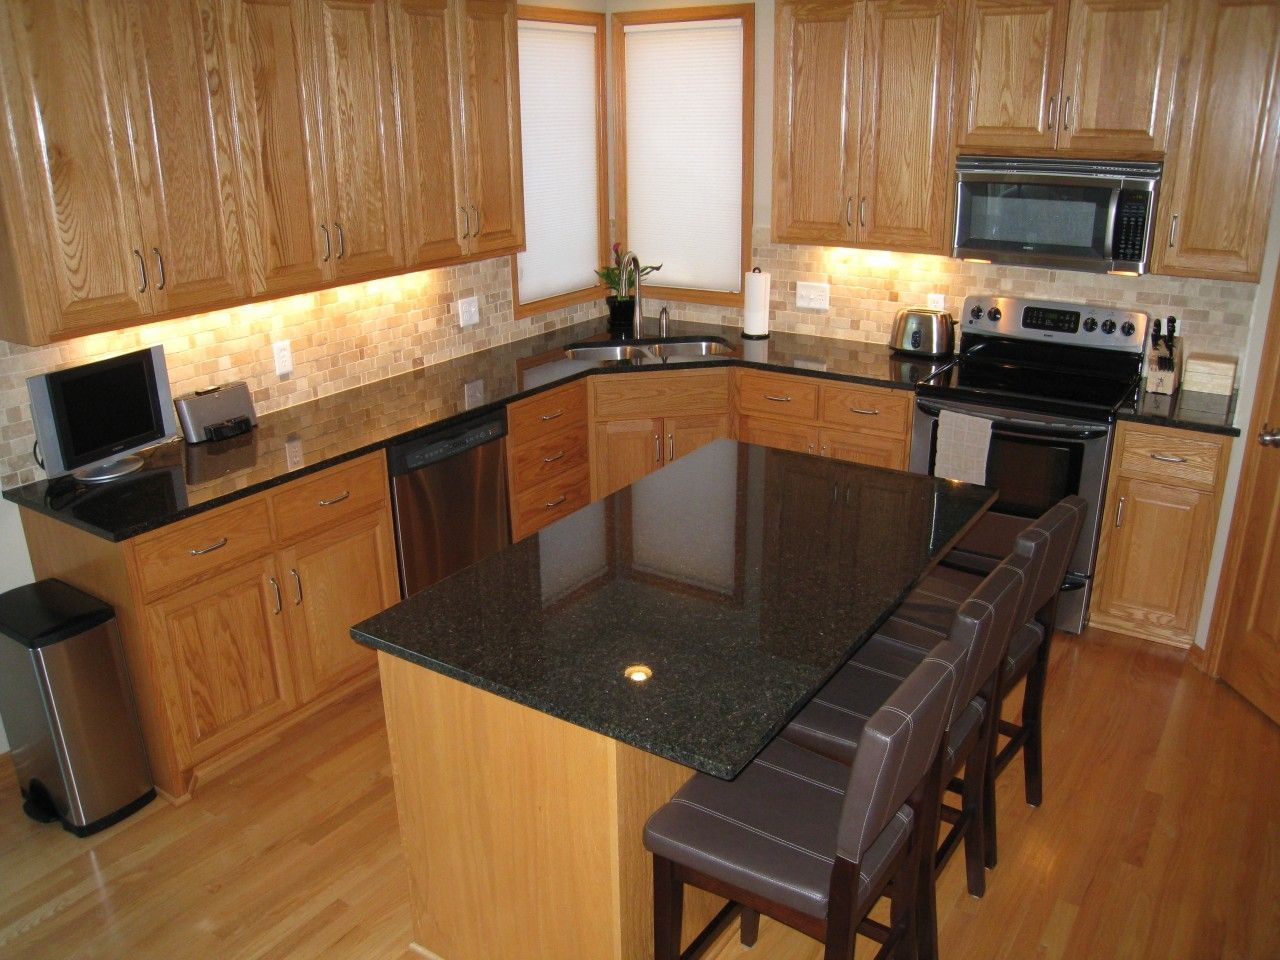 Dark Countertops With Dark Cabinets Dark Grey Countertops With Oak Cabinets Google Search